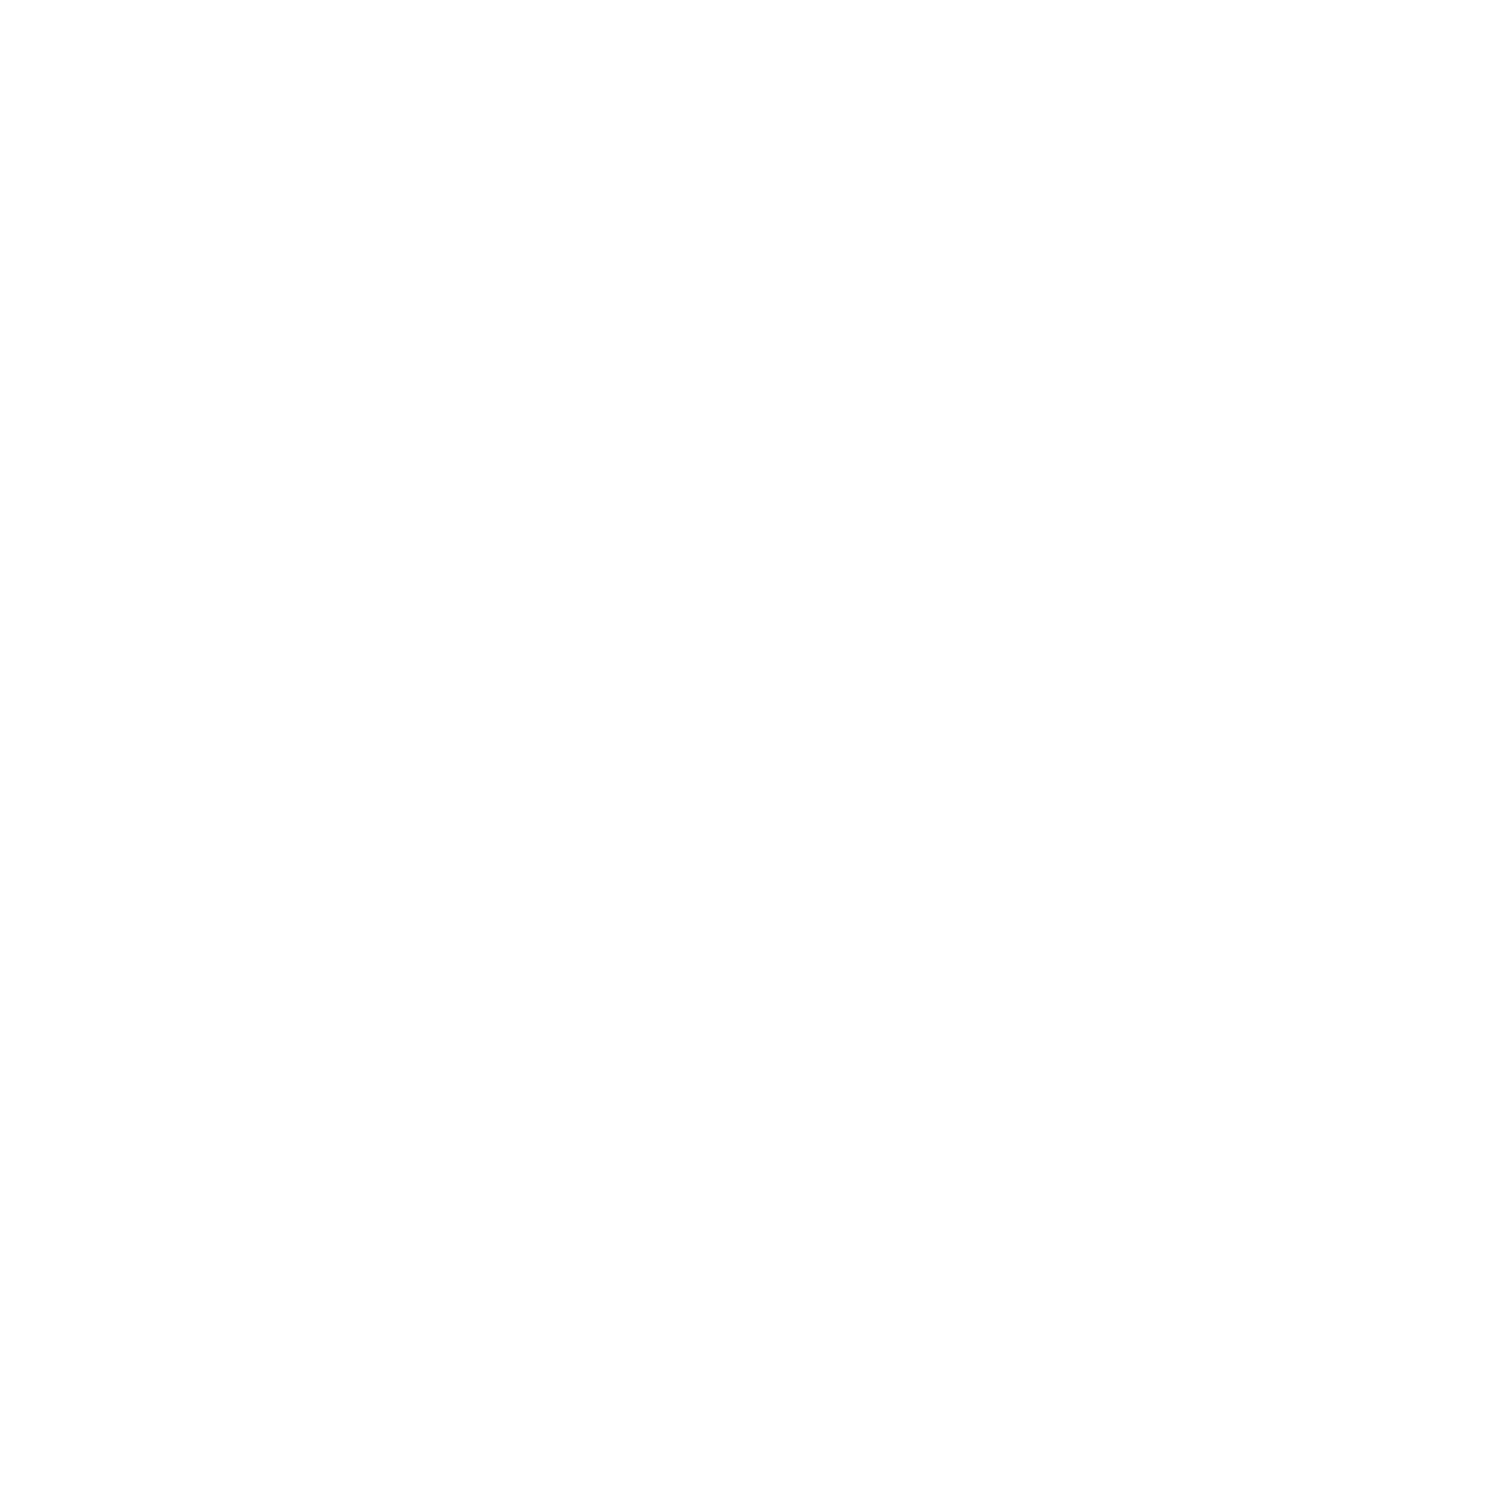 Trifecta Creative Studio